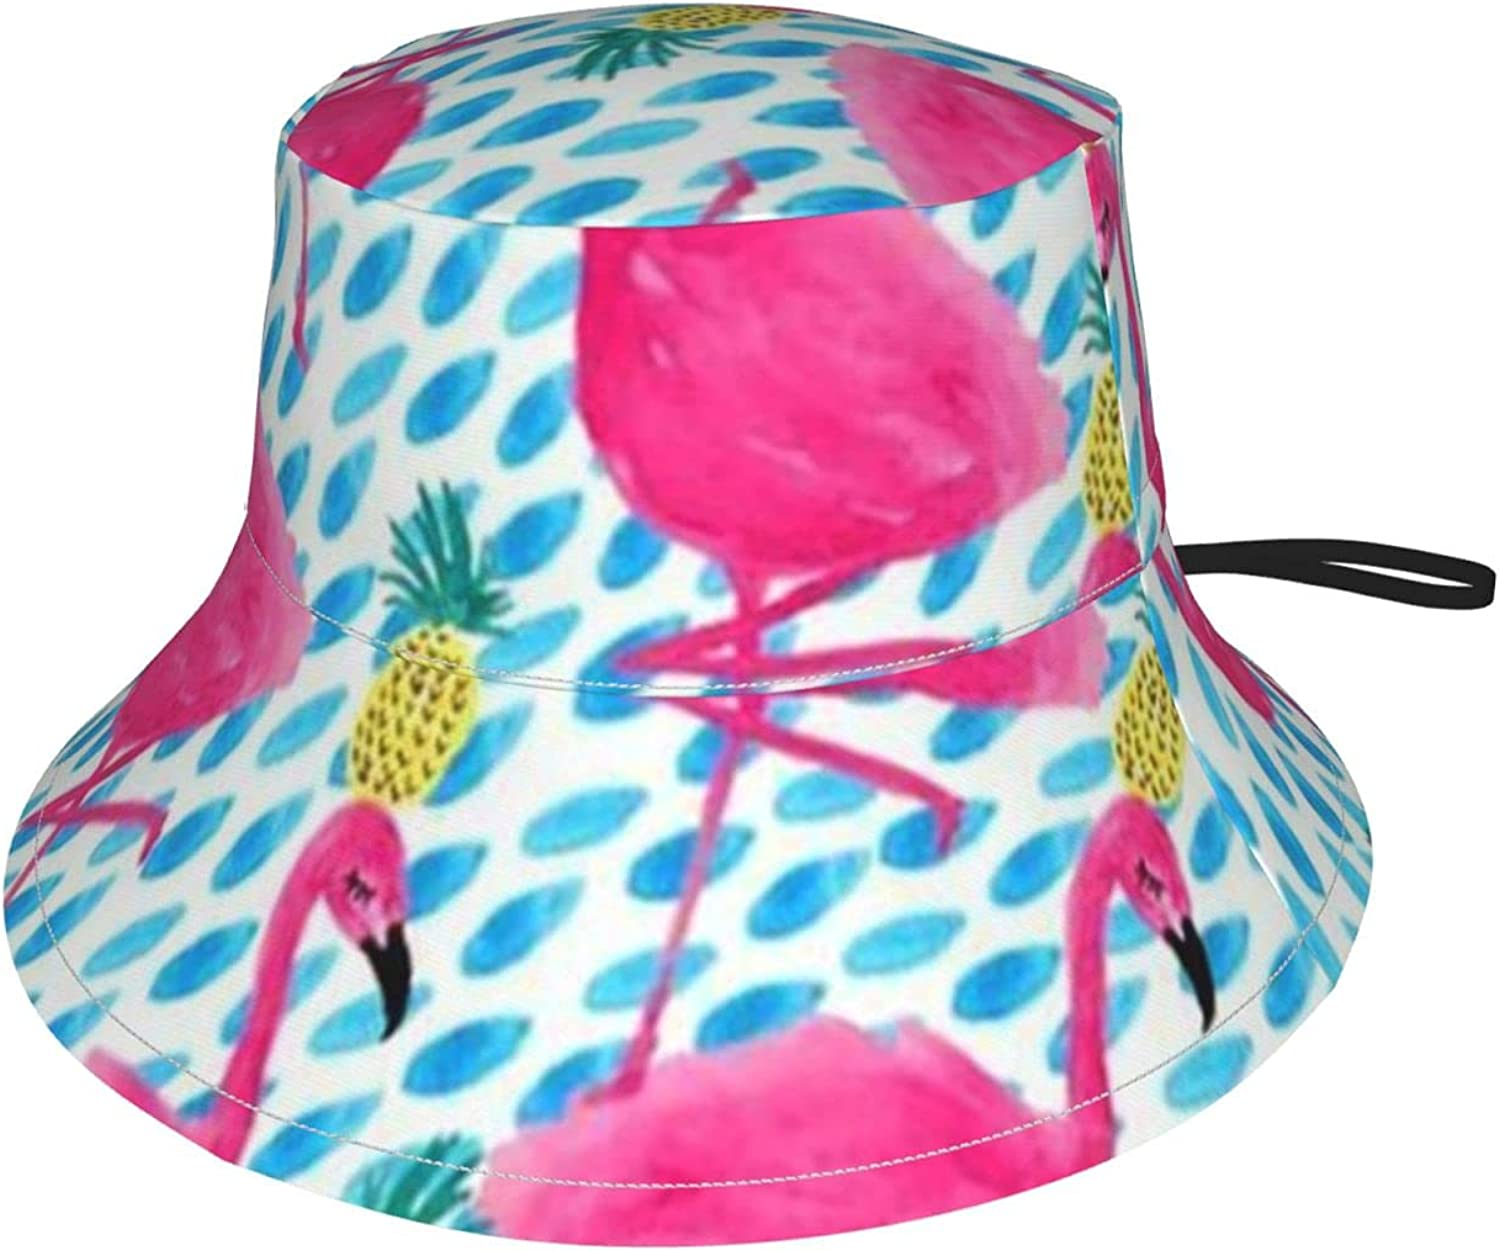 Flamingo Pineapple Quality inspection Kids Popular products Sun Suitable Bucket Breathable Hat